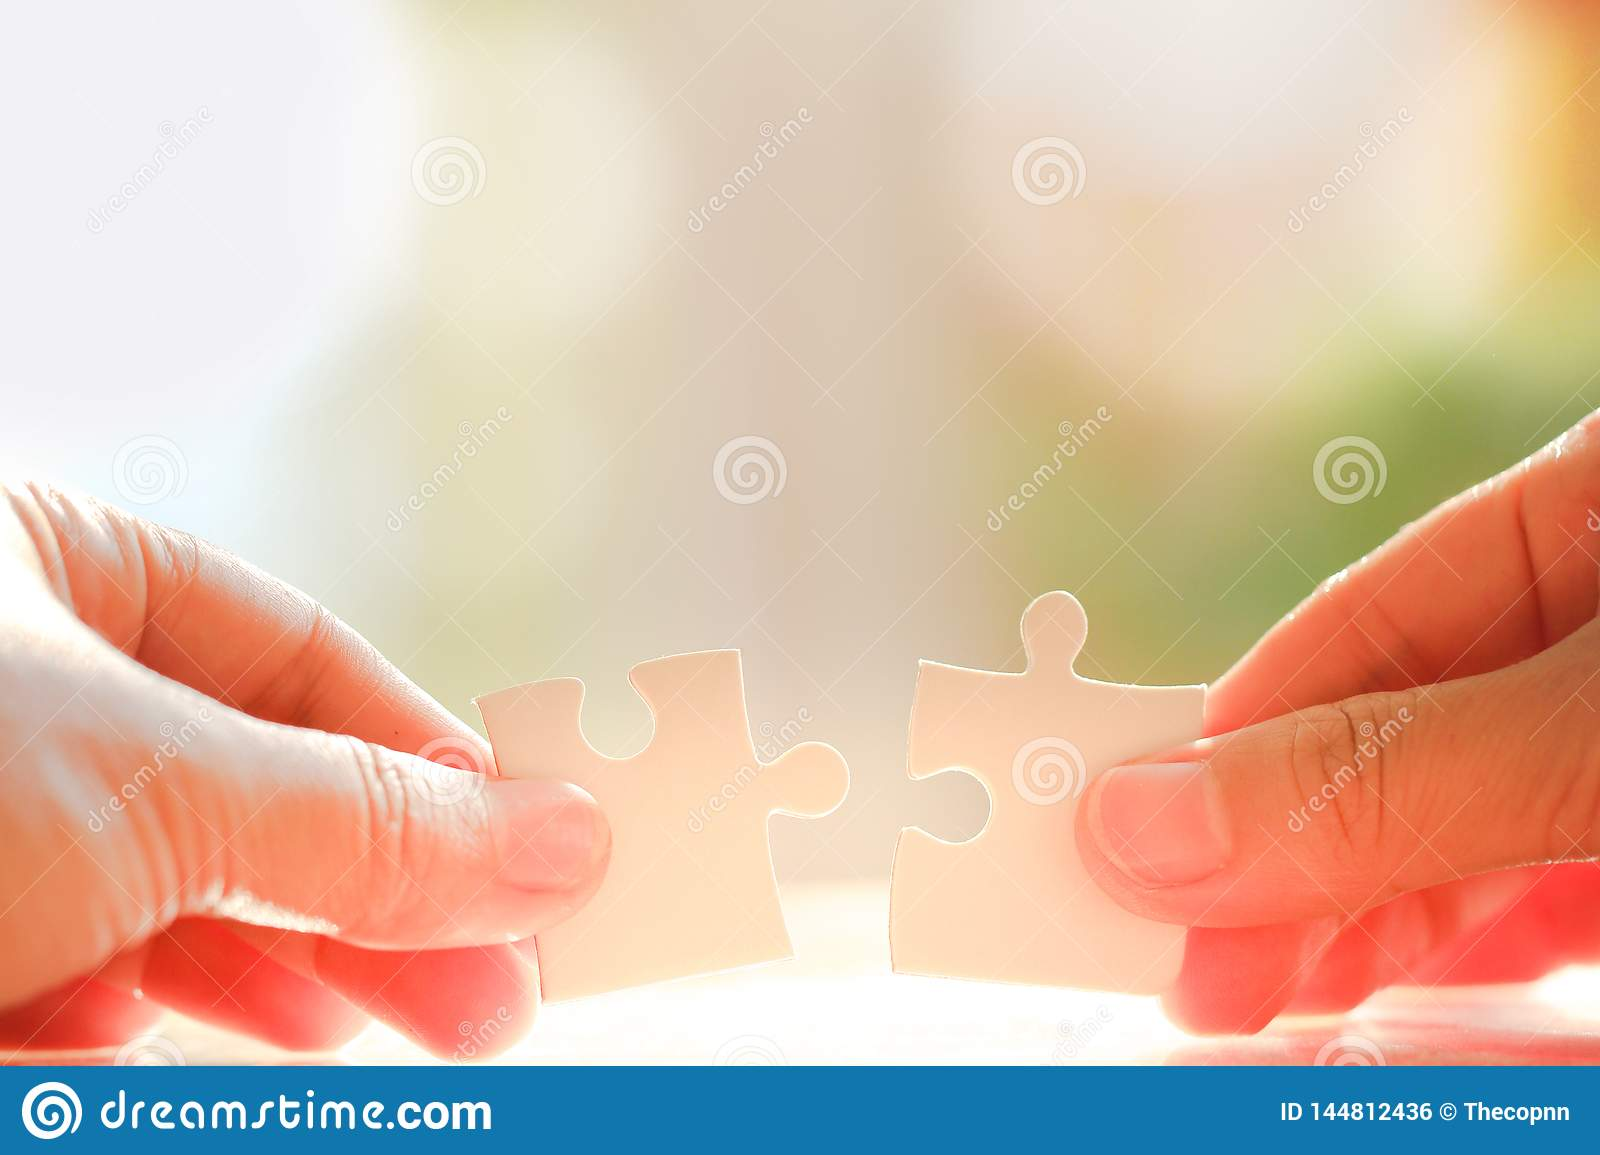 Hand holding and connecting jigsaw puzzles